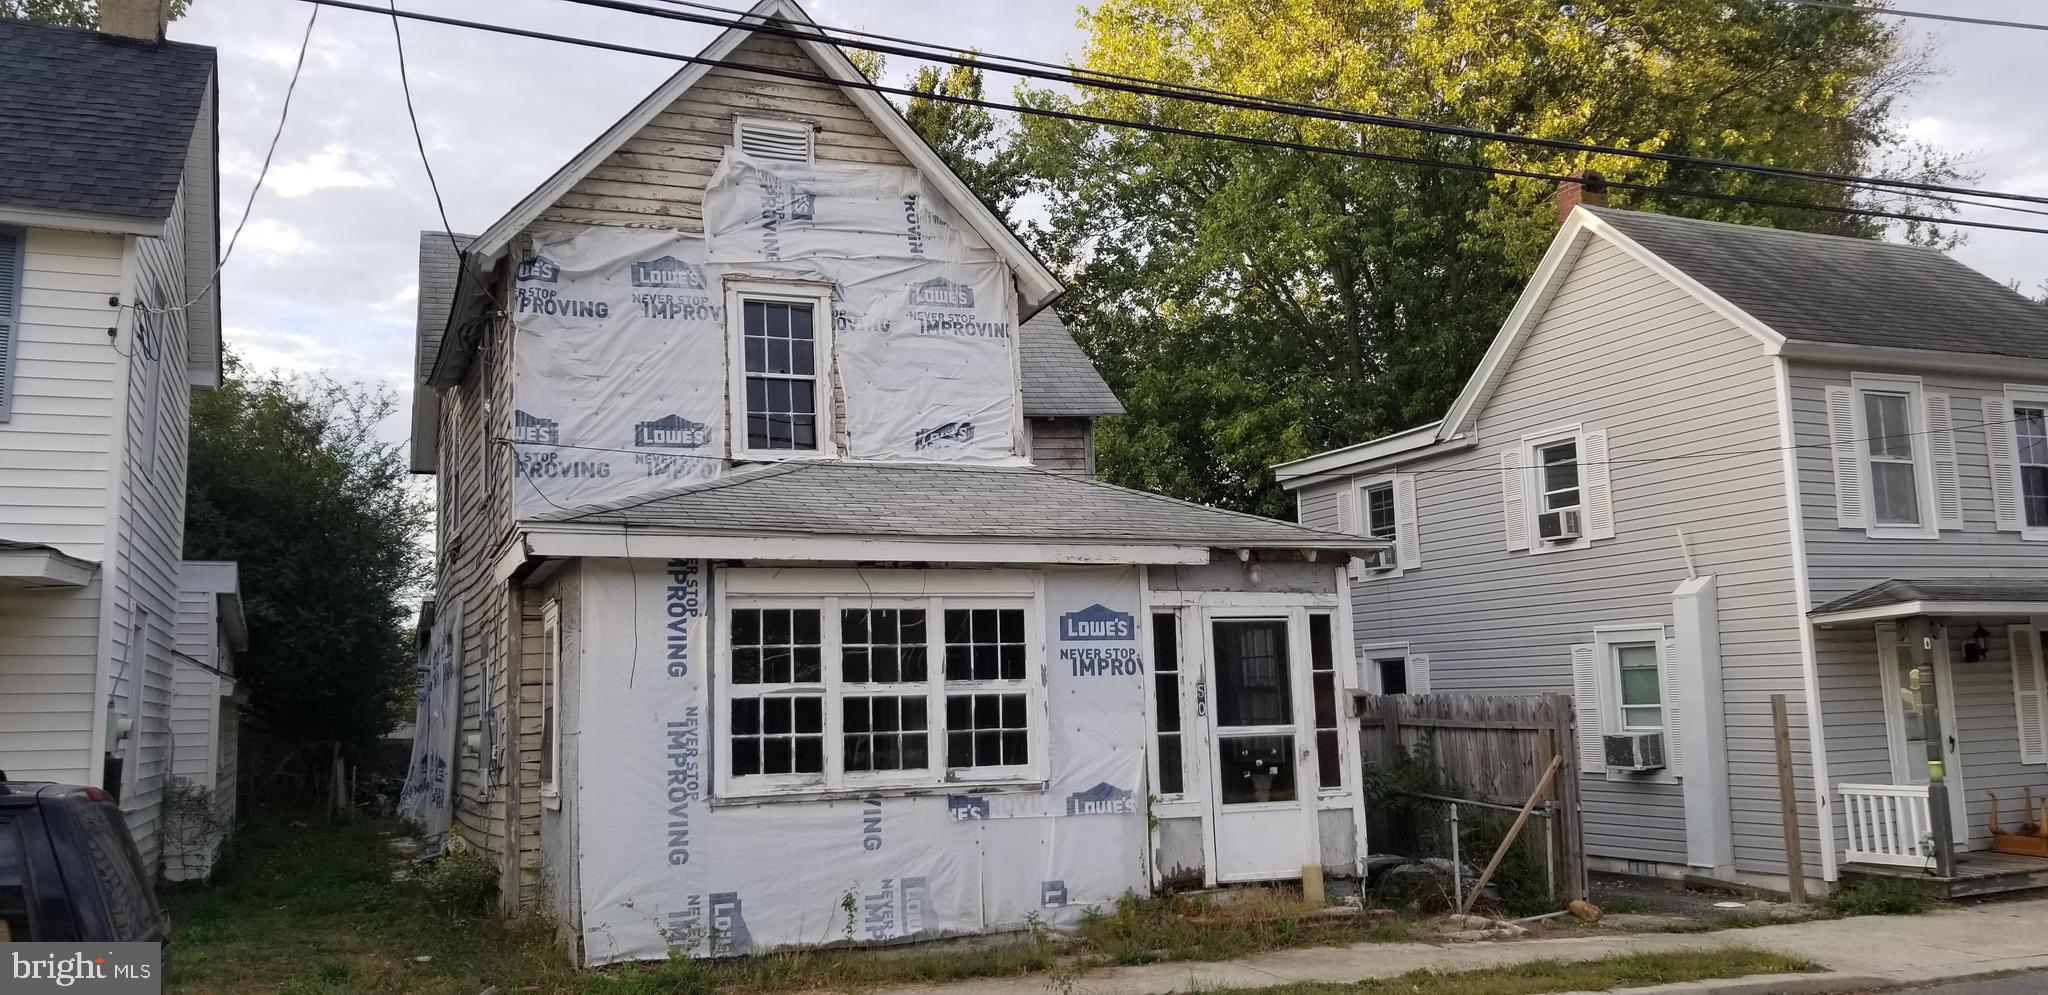 D-9366  Start your building project on this affordable lot with low taxes.  Priced at the value of the land. Use Caution if entered. Use protection including a bump cap and mask. We have no knowledge of structural integrity. YOU HAVE BEEN WARNED!